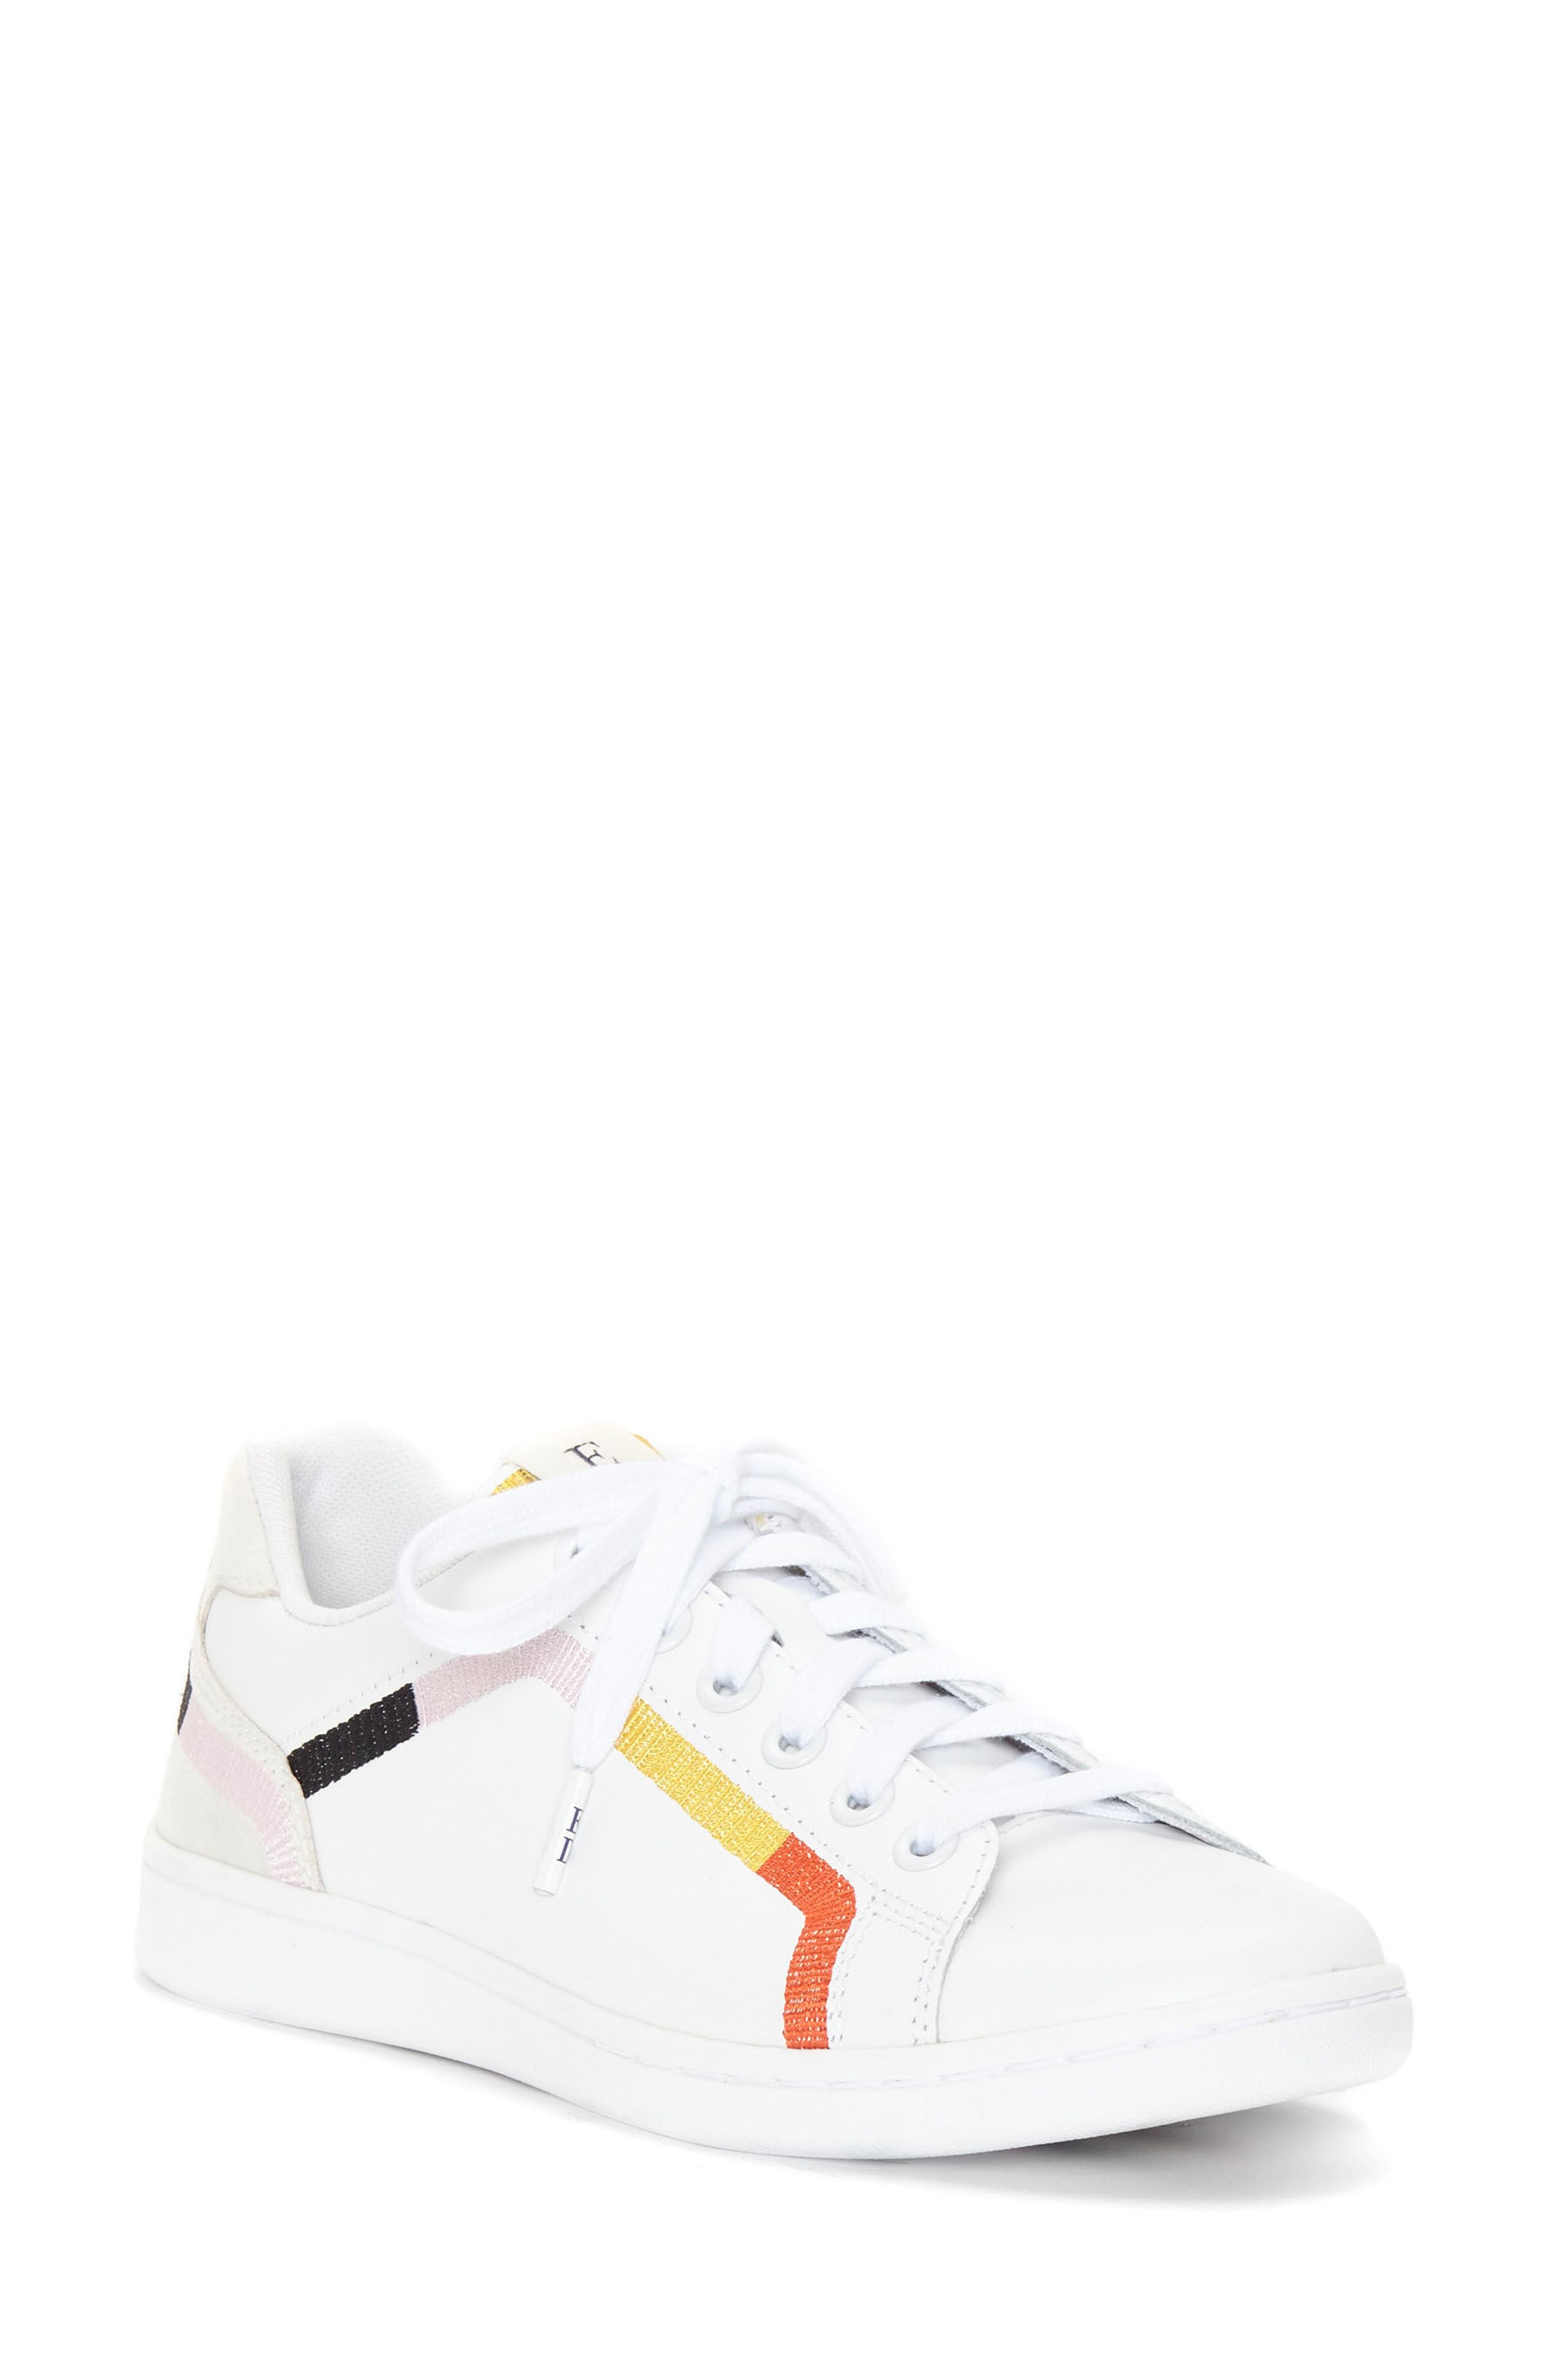 Costella Sneaker,                             Main thumbnail 1, color,                             PURE WHITE LEATHER